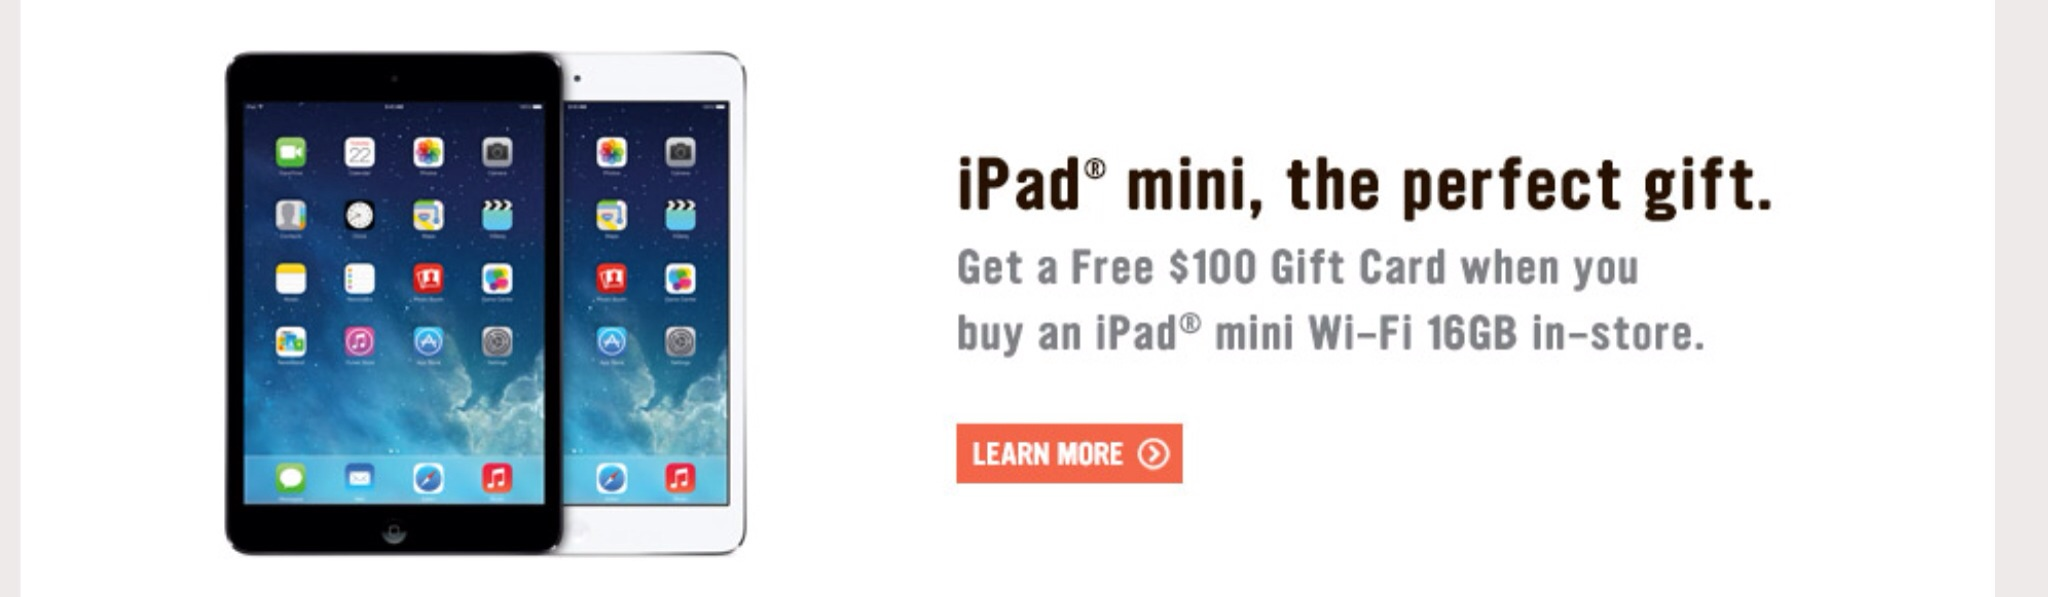 RadioShack Offering $100 Gift Card With iPad mini Purchases For The Holidays